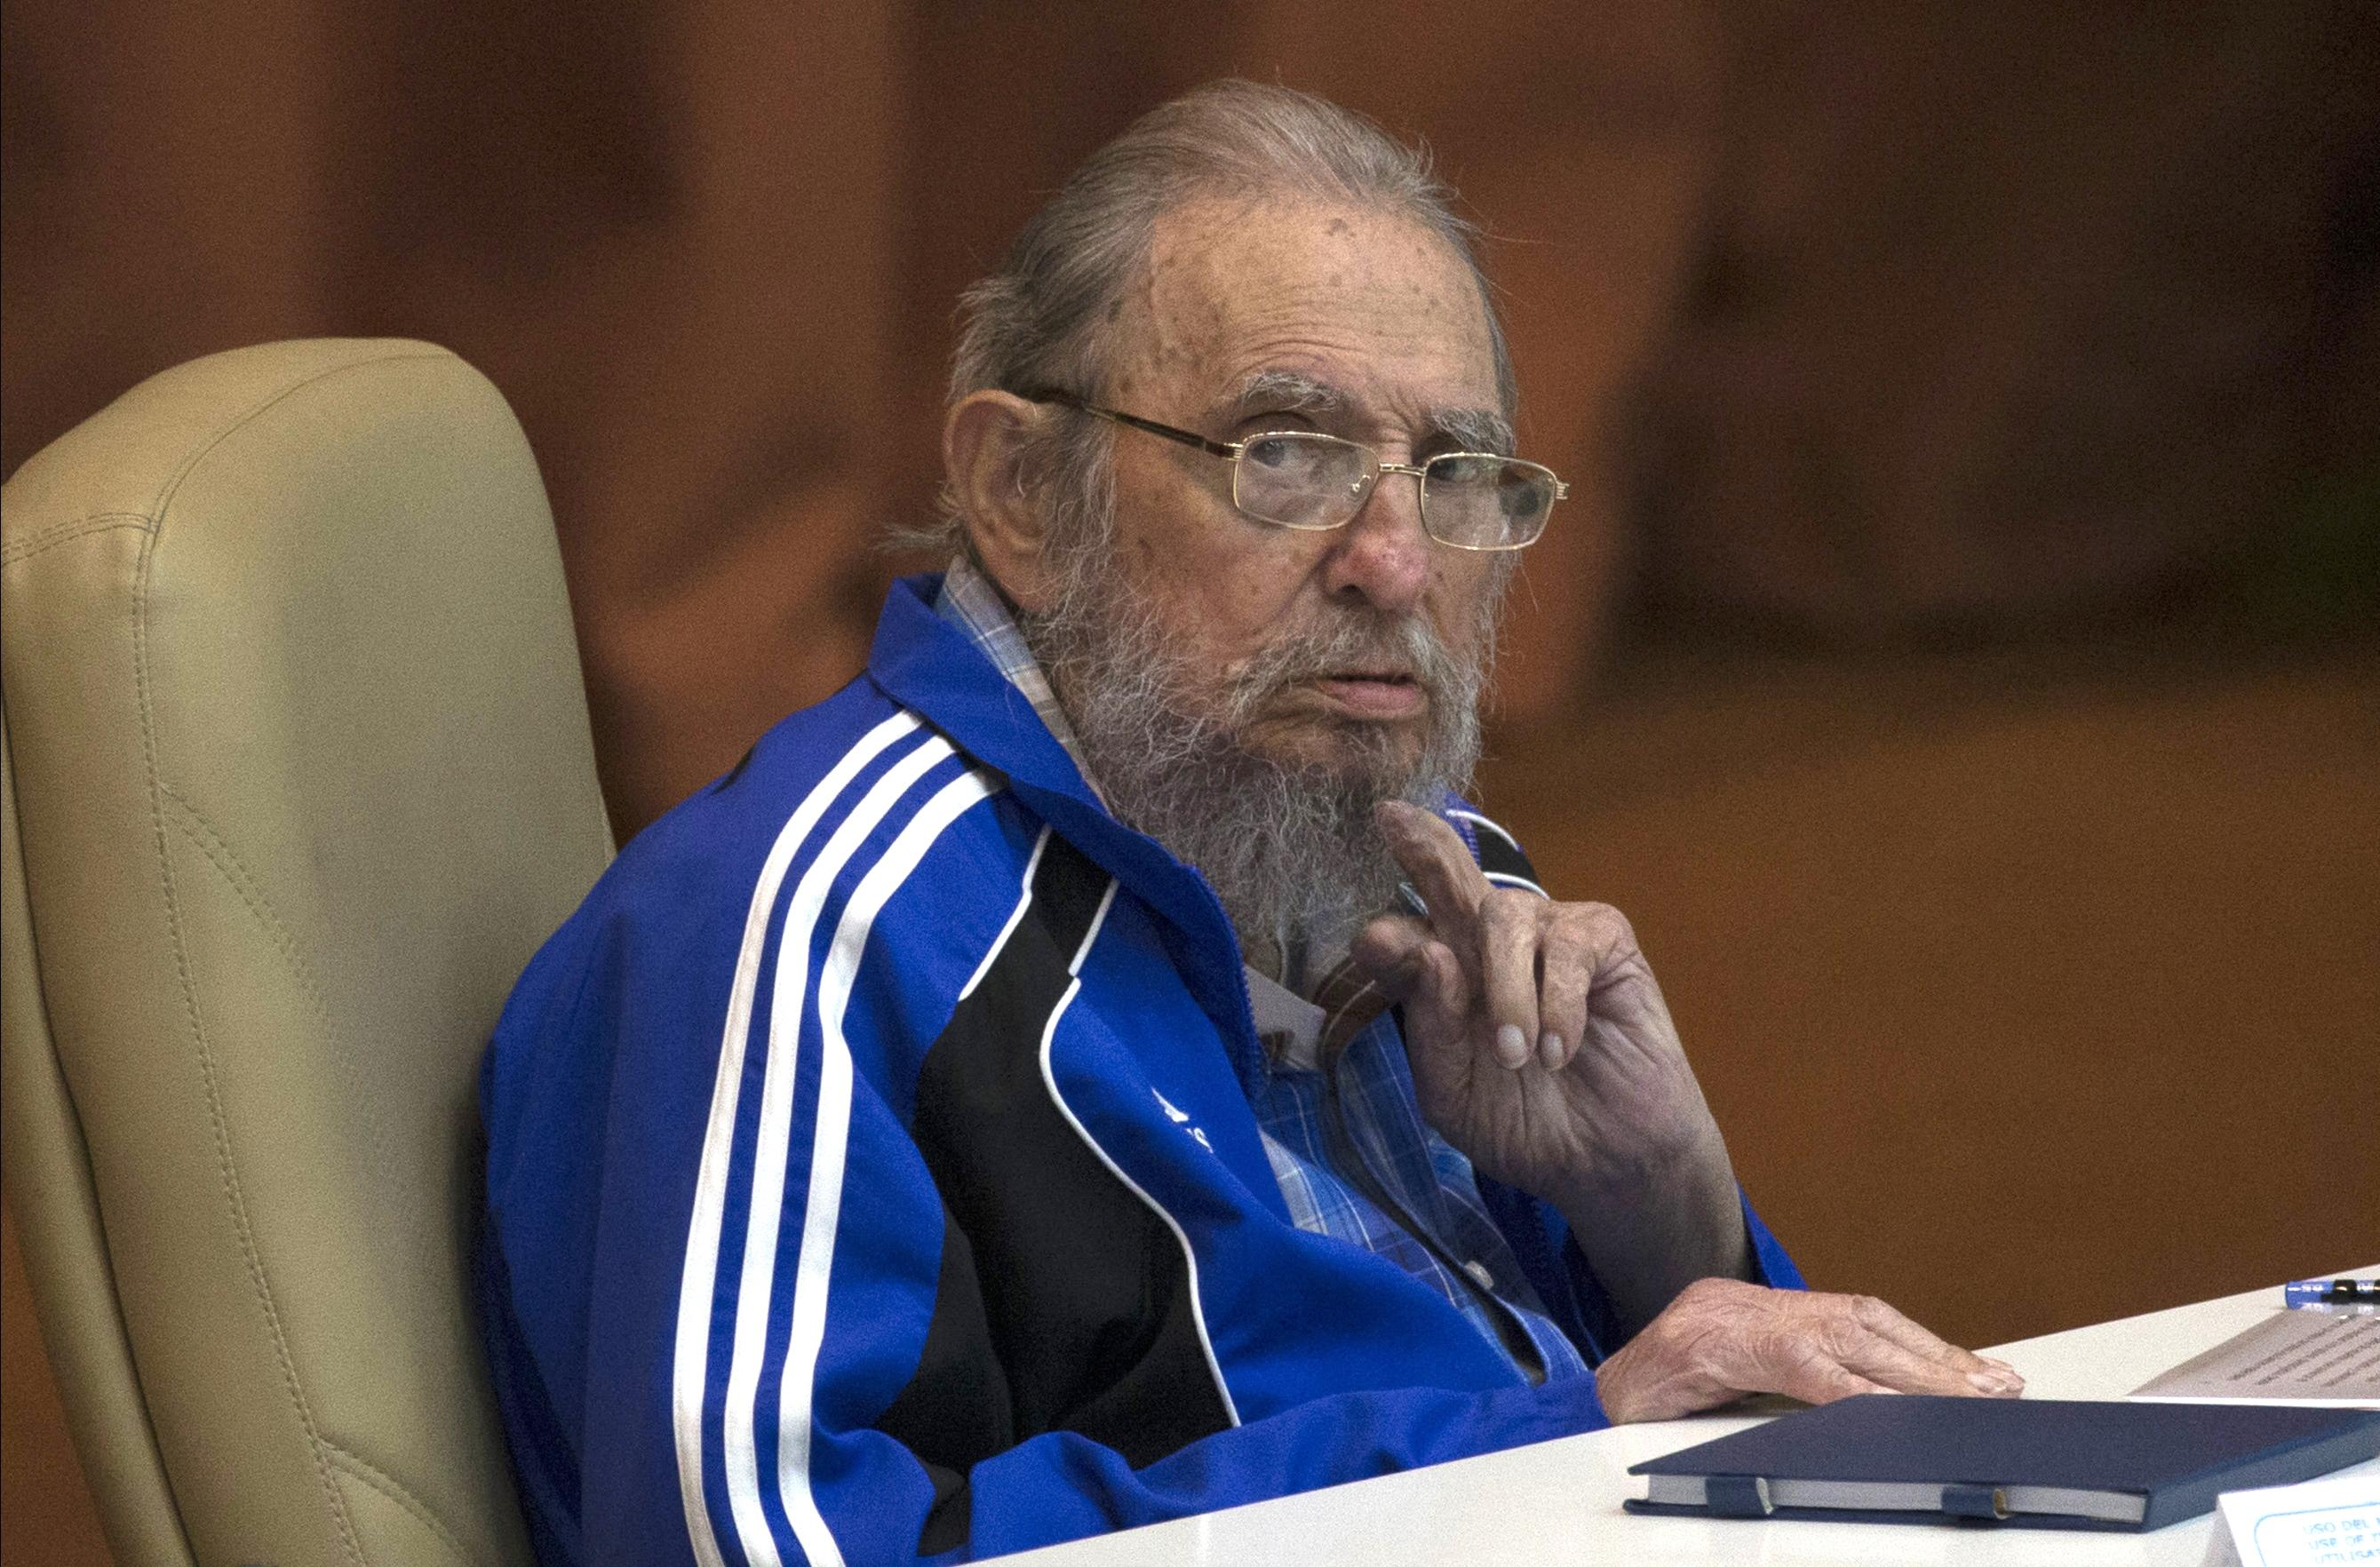 In this April 19, 2016 file photo, Fidel Castro attends the last day of the 7th Cuban Communist Party Congress in Havana, Cuba. Fidel Castro formally stepped down in 2008 after suffering gastrointestinal ailments and public appearances have been increasingly unusual in recent years. Cuban President Raul Castro has announced the death of his brother Fidel Castro at age 90 on Cuban state media on Friday, Nov. 25, 2016. | Ismael Francisco/Cuba debate via AP, St. George News